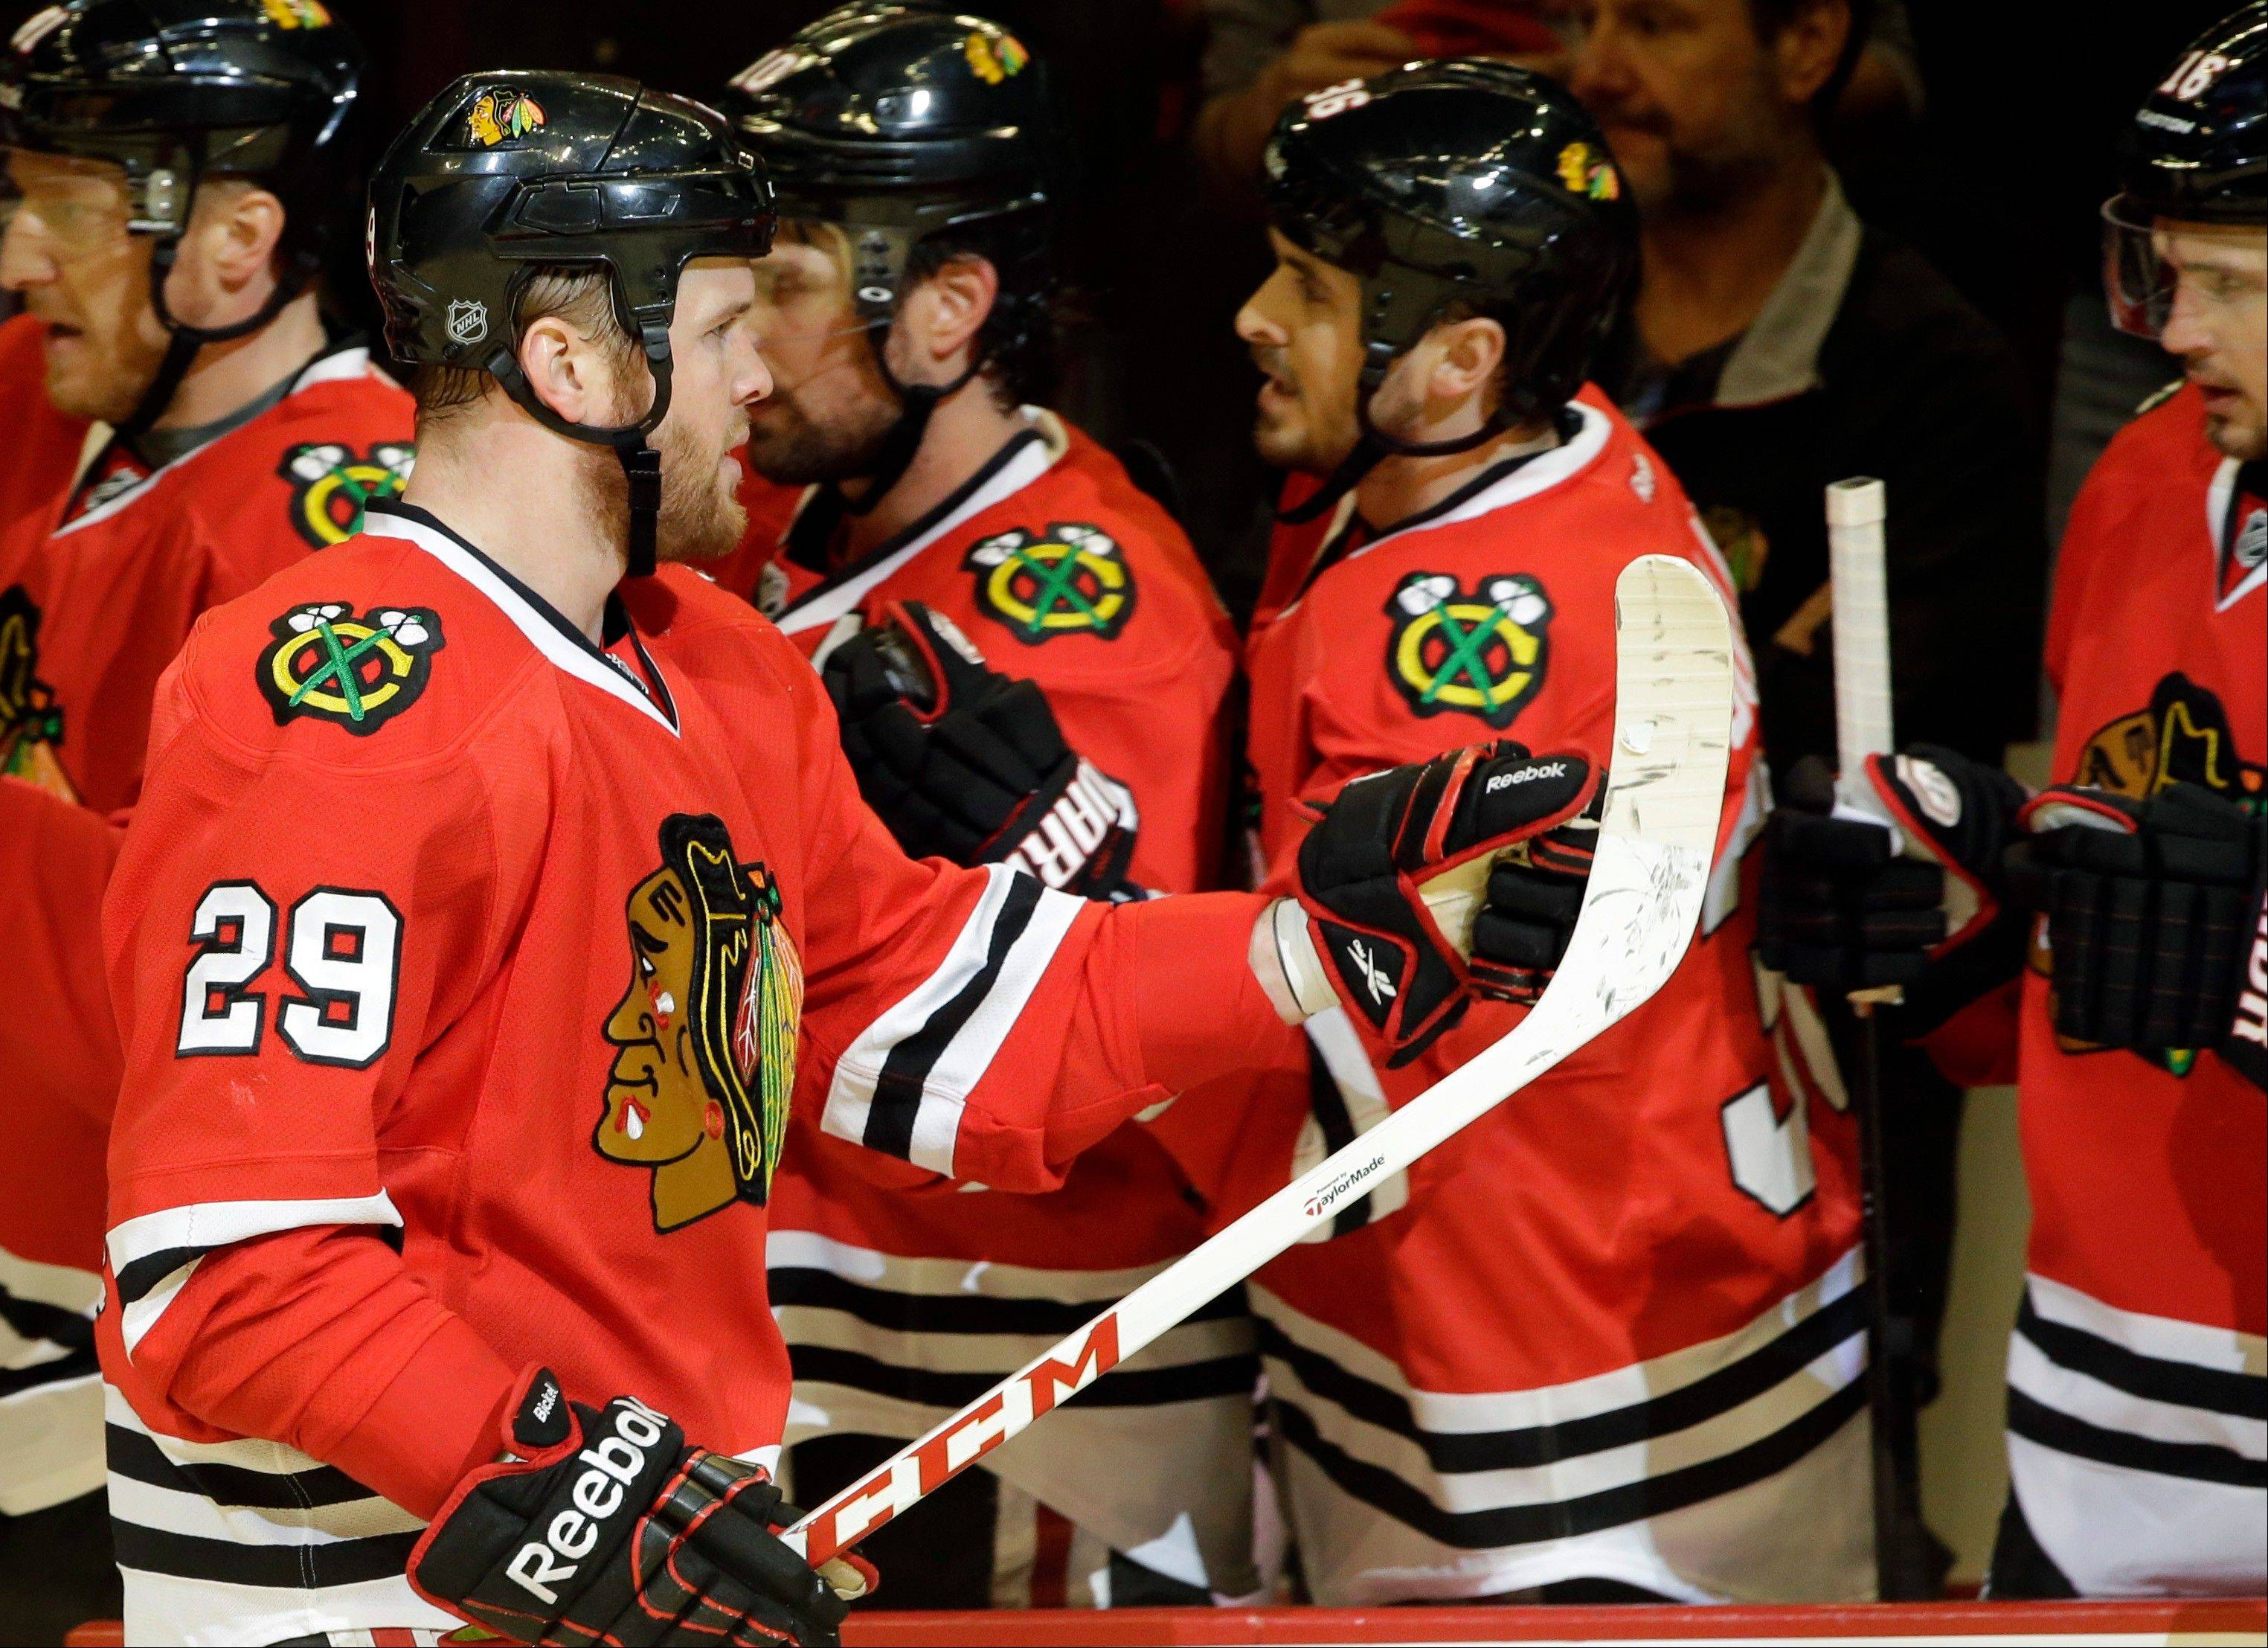 Chicago Blackhawks' Bryan Bickell (29) celebrates with teammates after scoring a goal during the first period of Game 5 of the NHL hockey Stanley Cup playoffs Western Conference semifinals against the Detroit Red Wings in Chicago, Saturday, May 25, 2013.